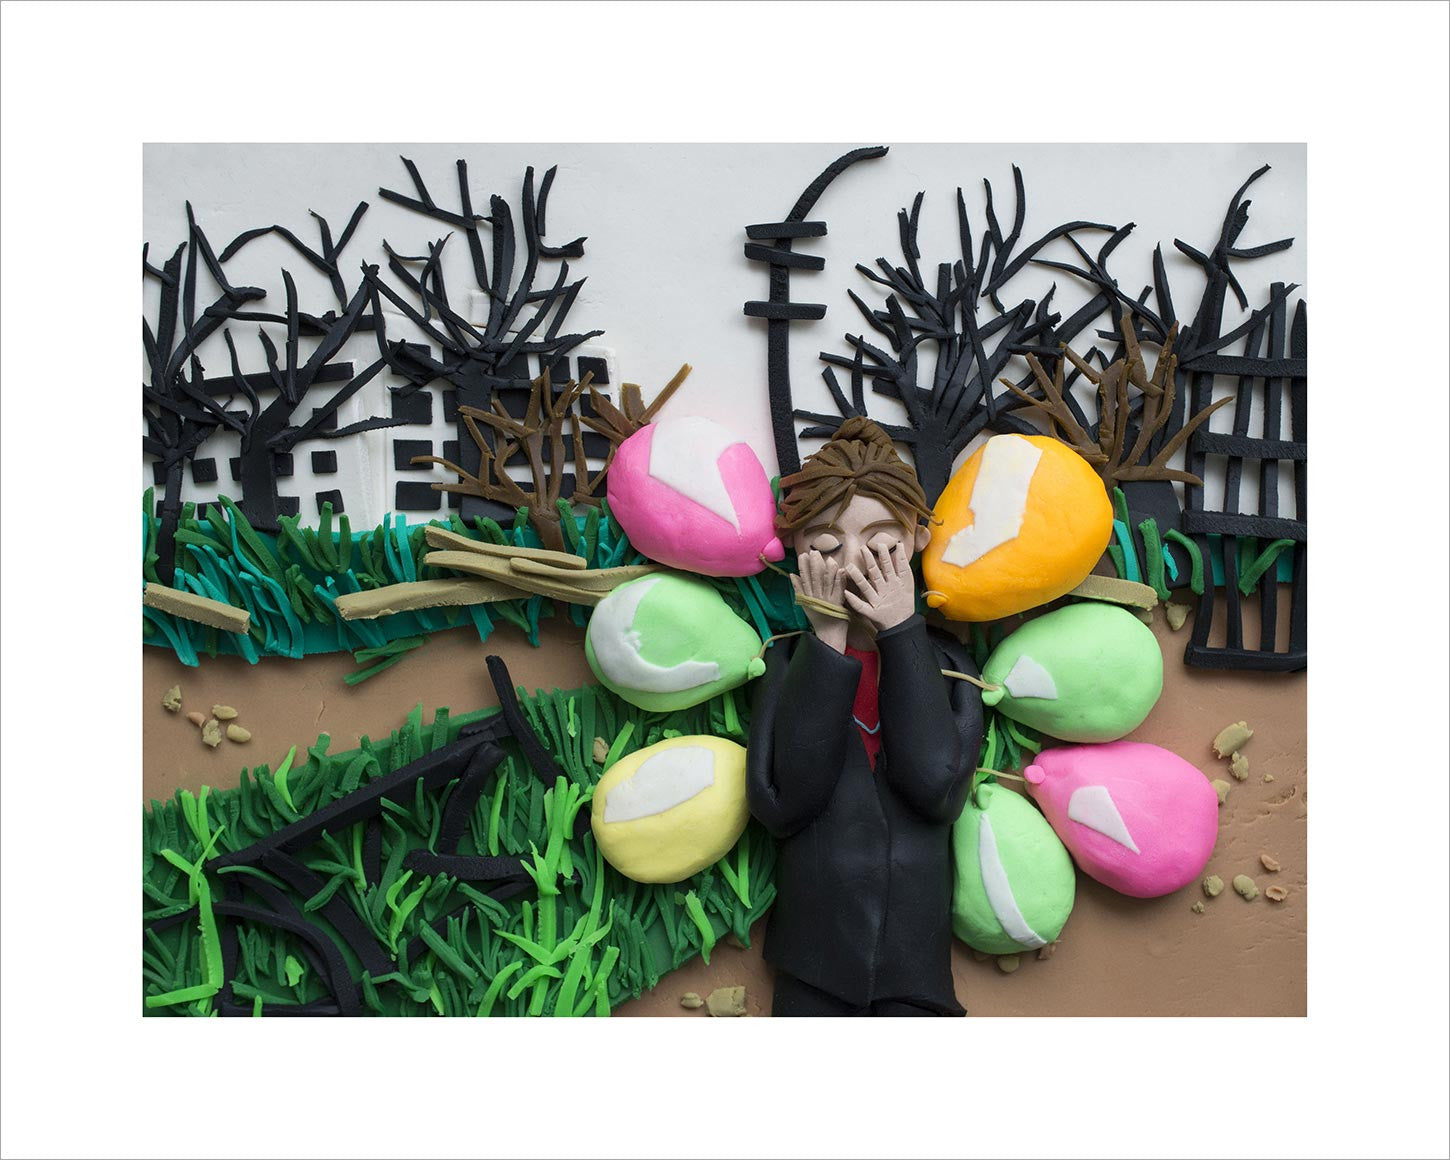 Photographs Rendered in Play-Doh: Girl with balloons, Grozny, Chechnya, Russia, March 2002 by Thomas Dworzak